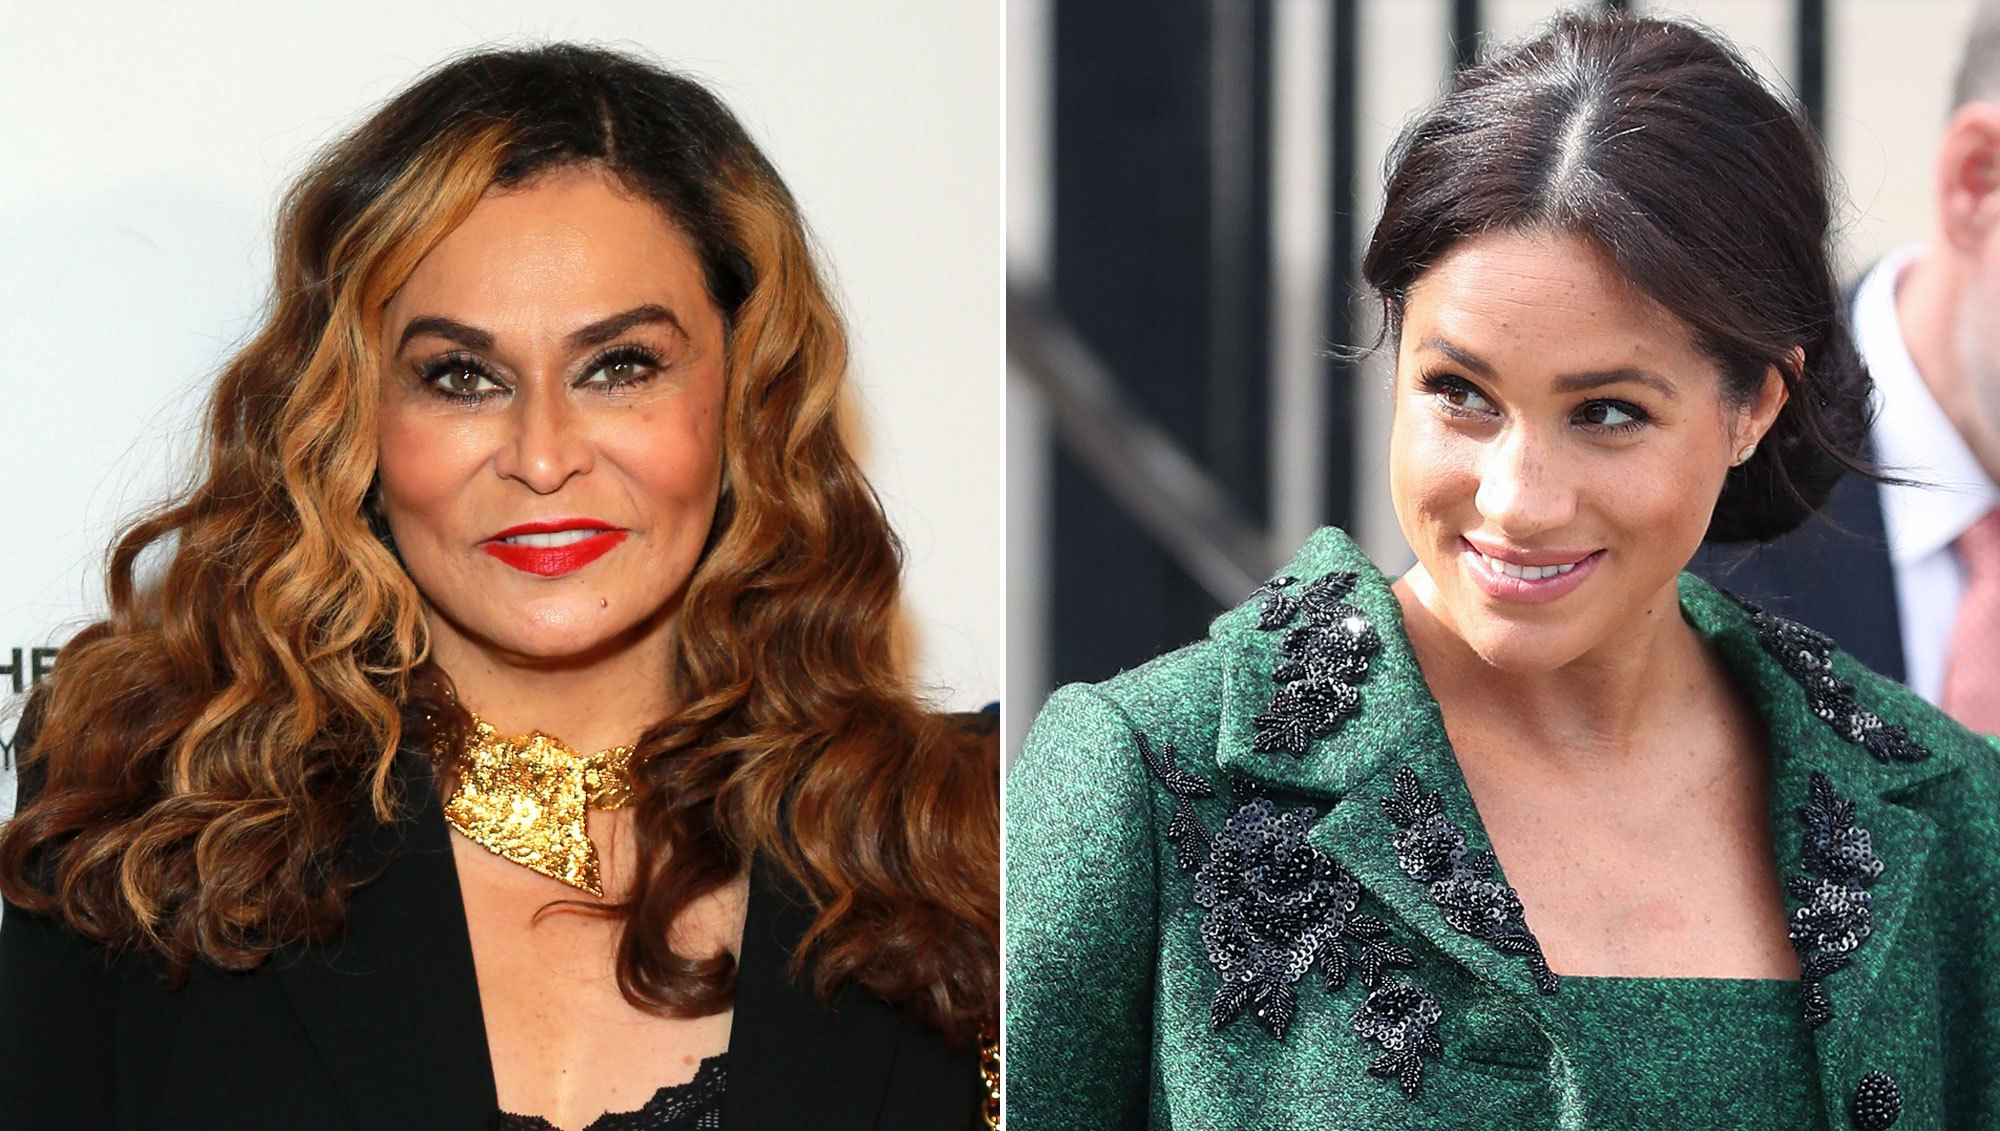 Tina Knowles Gushes Over 'Beautiful Intelligent Independent' Duchess Meghan